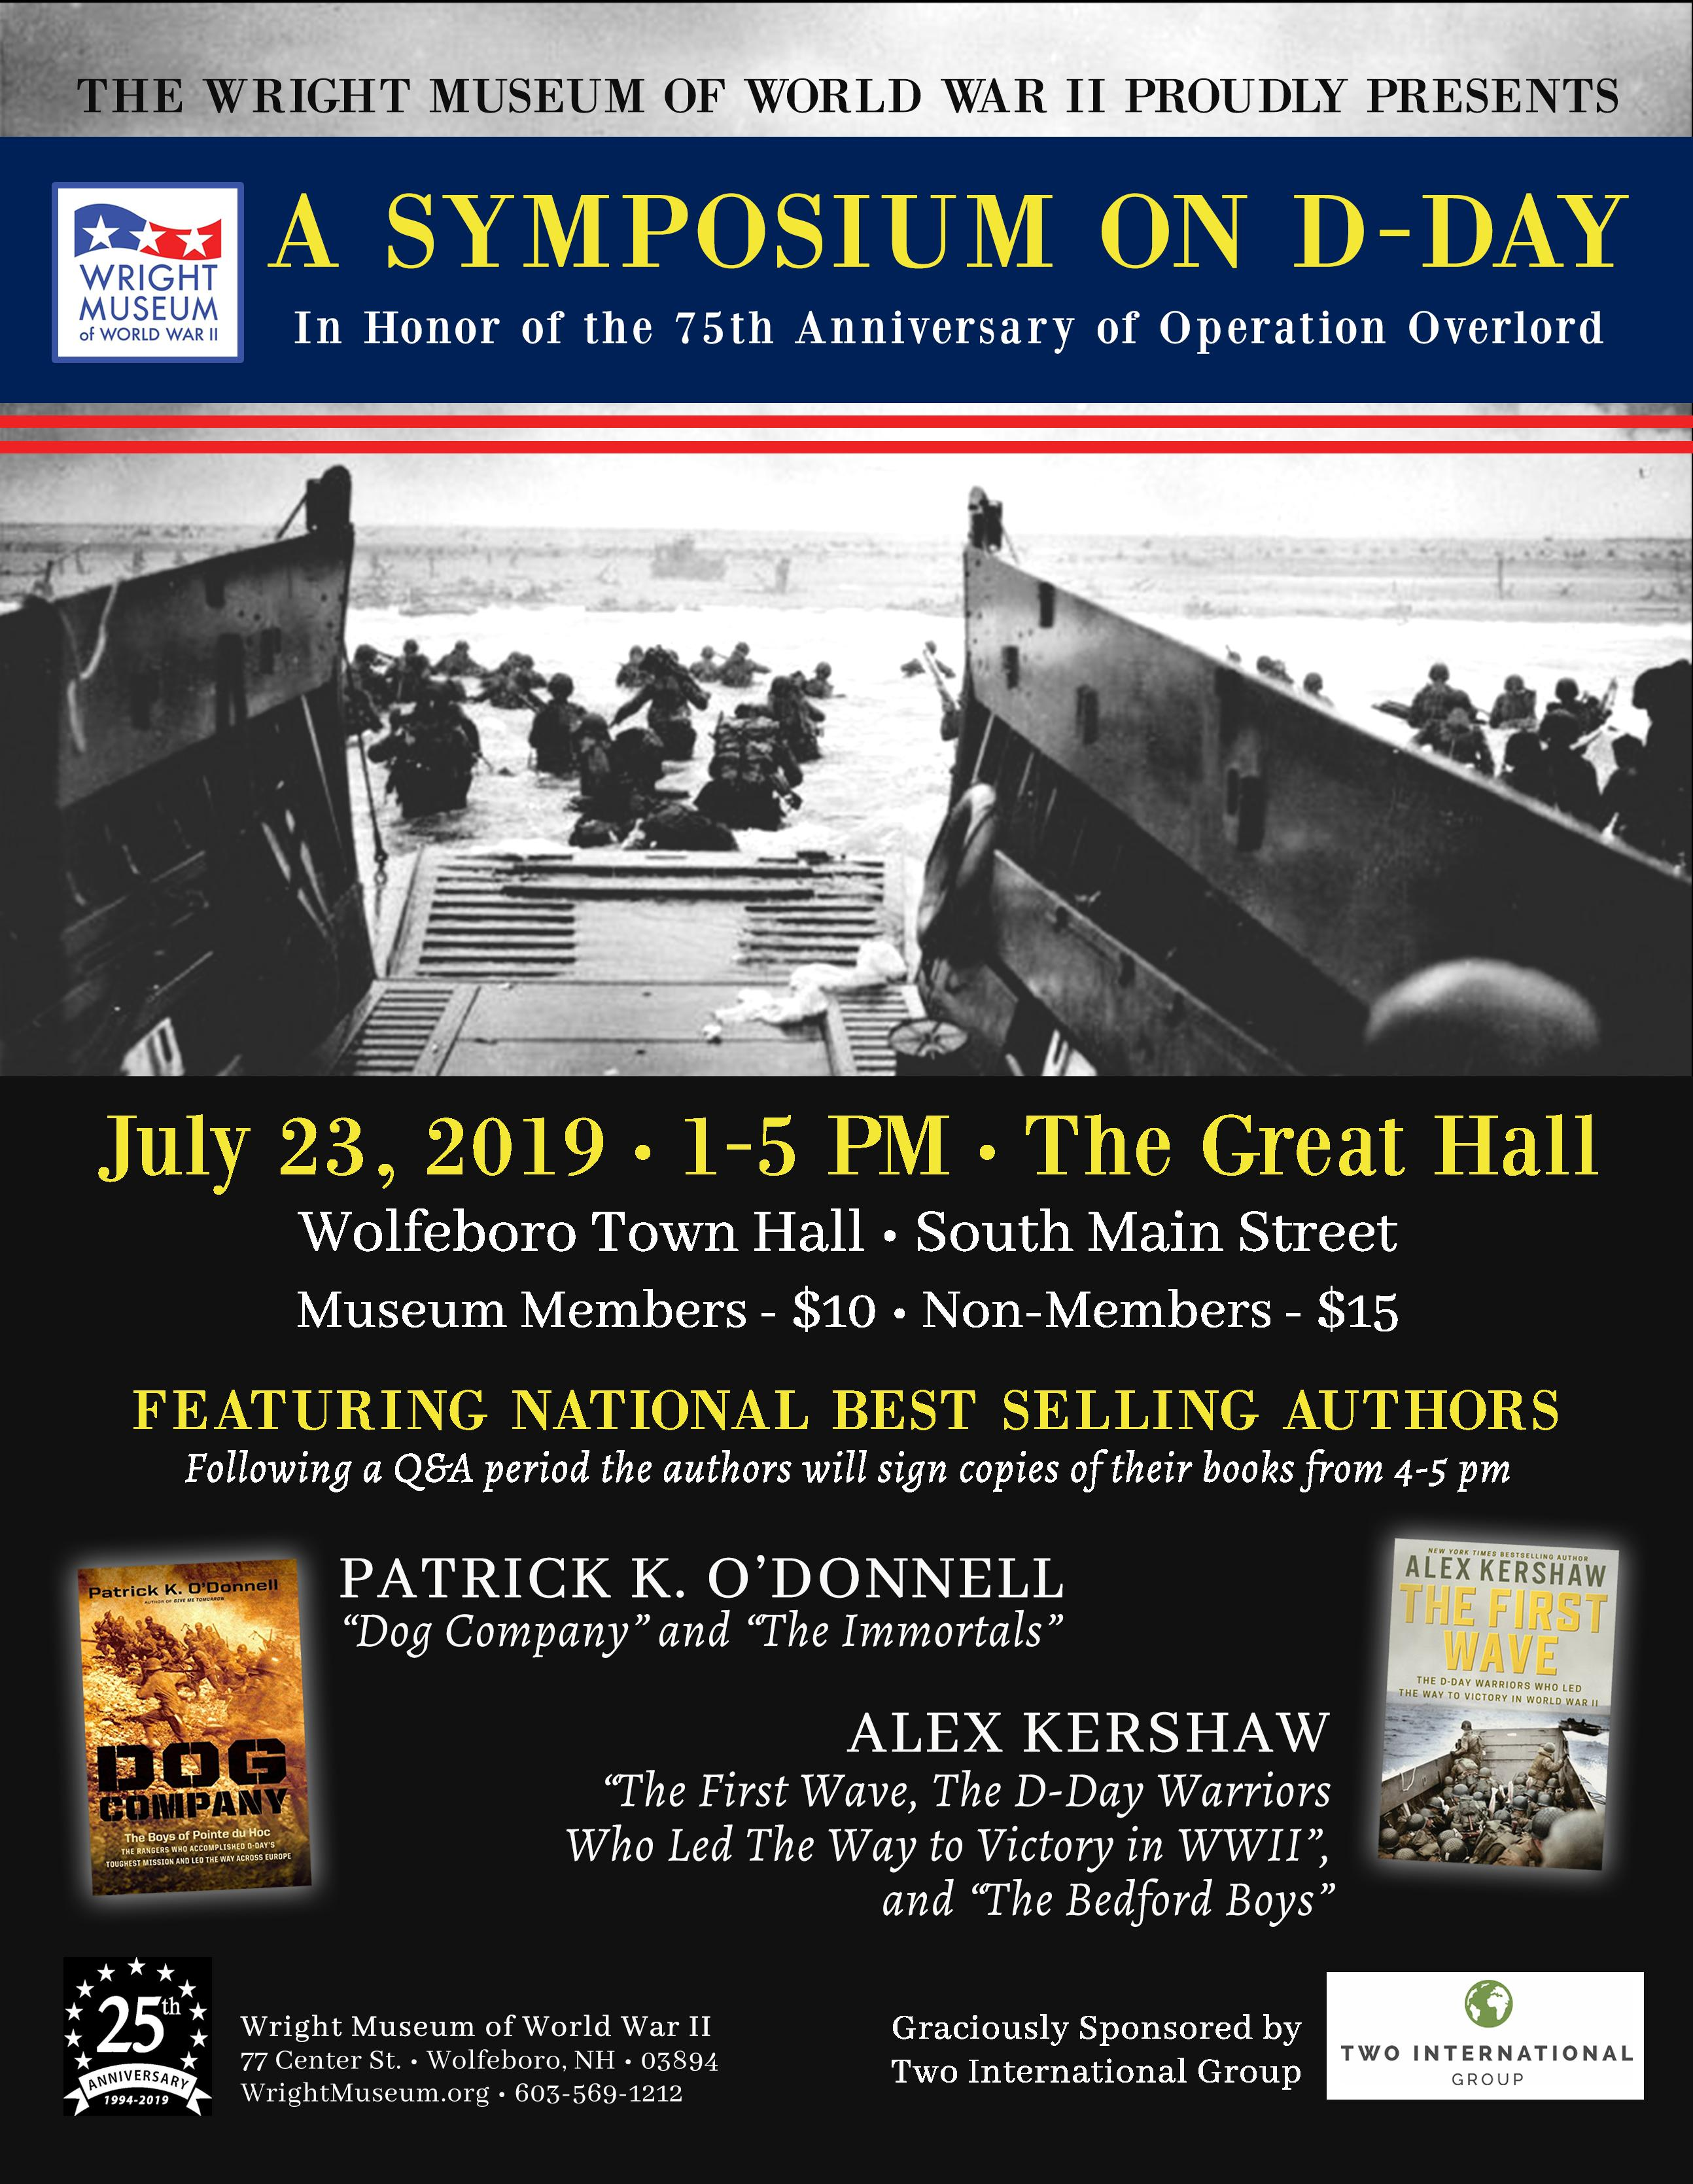 Symposium on D-Day | Wright Museum of World War II